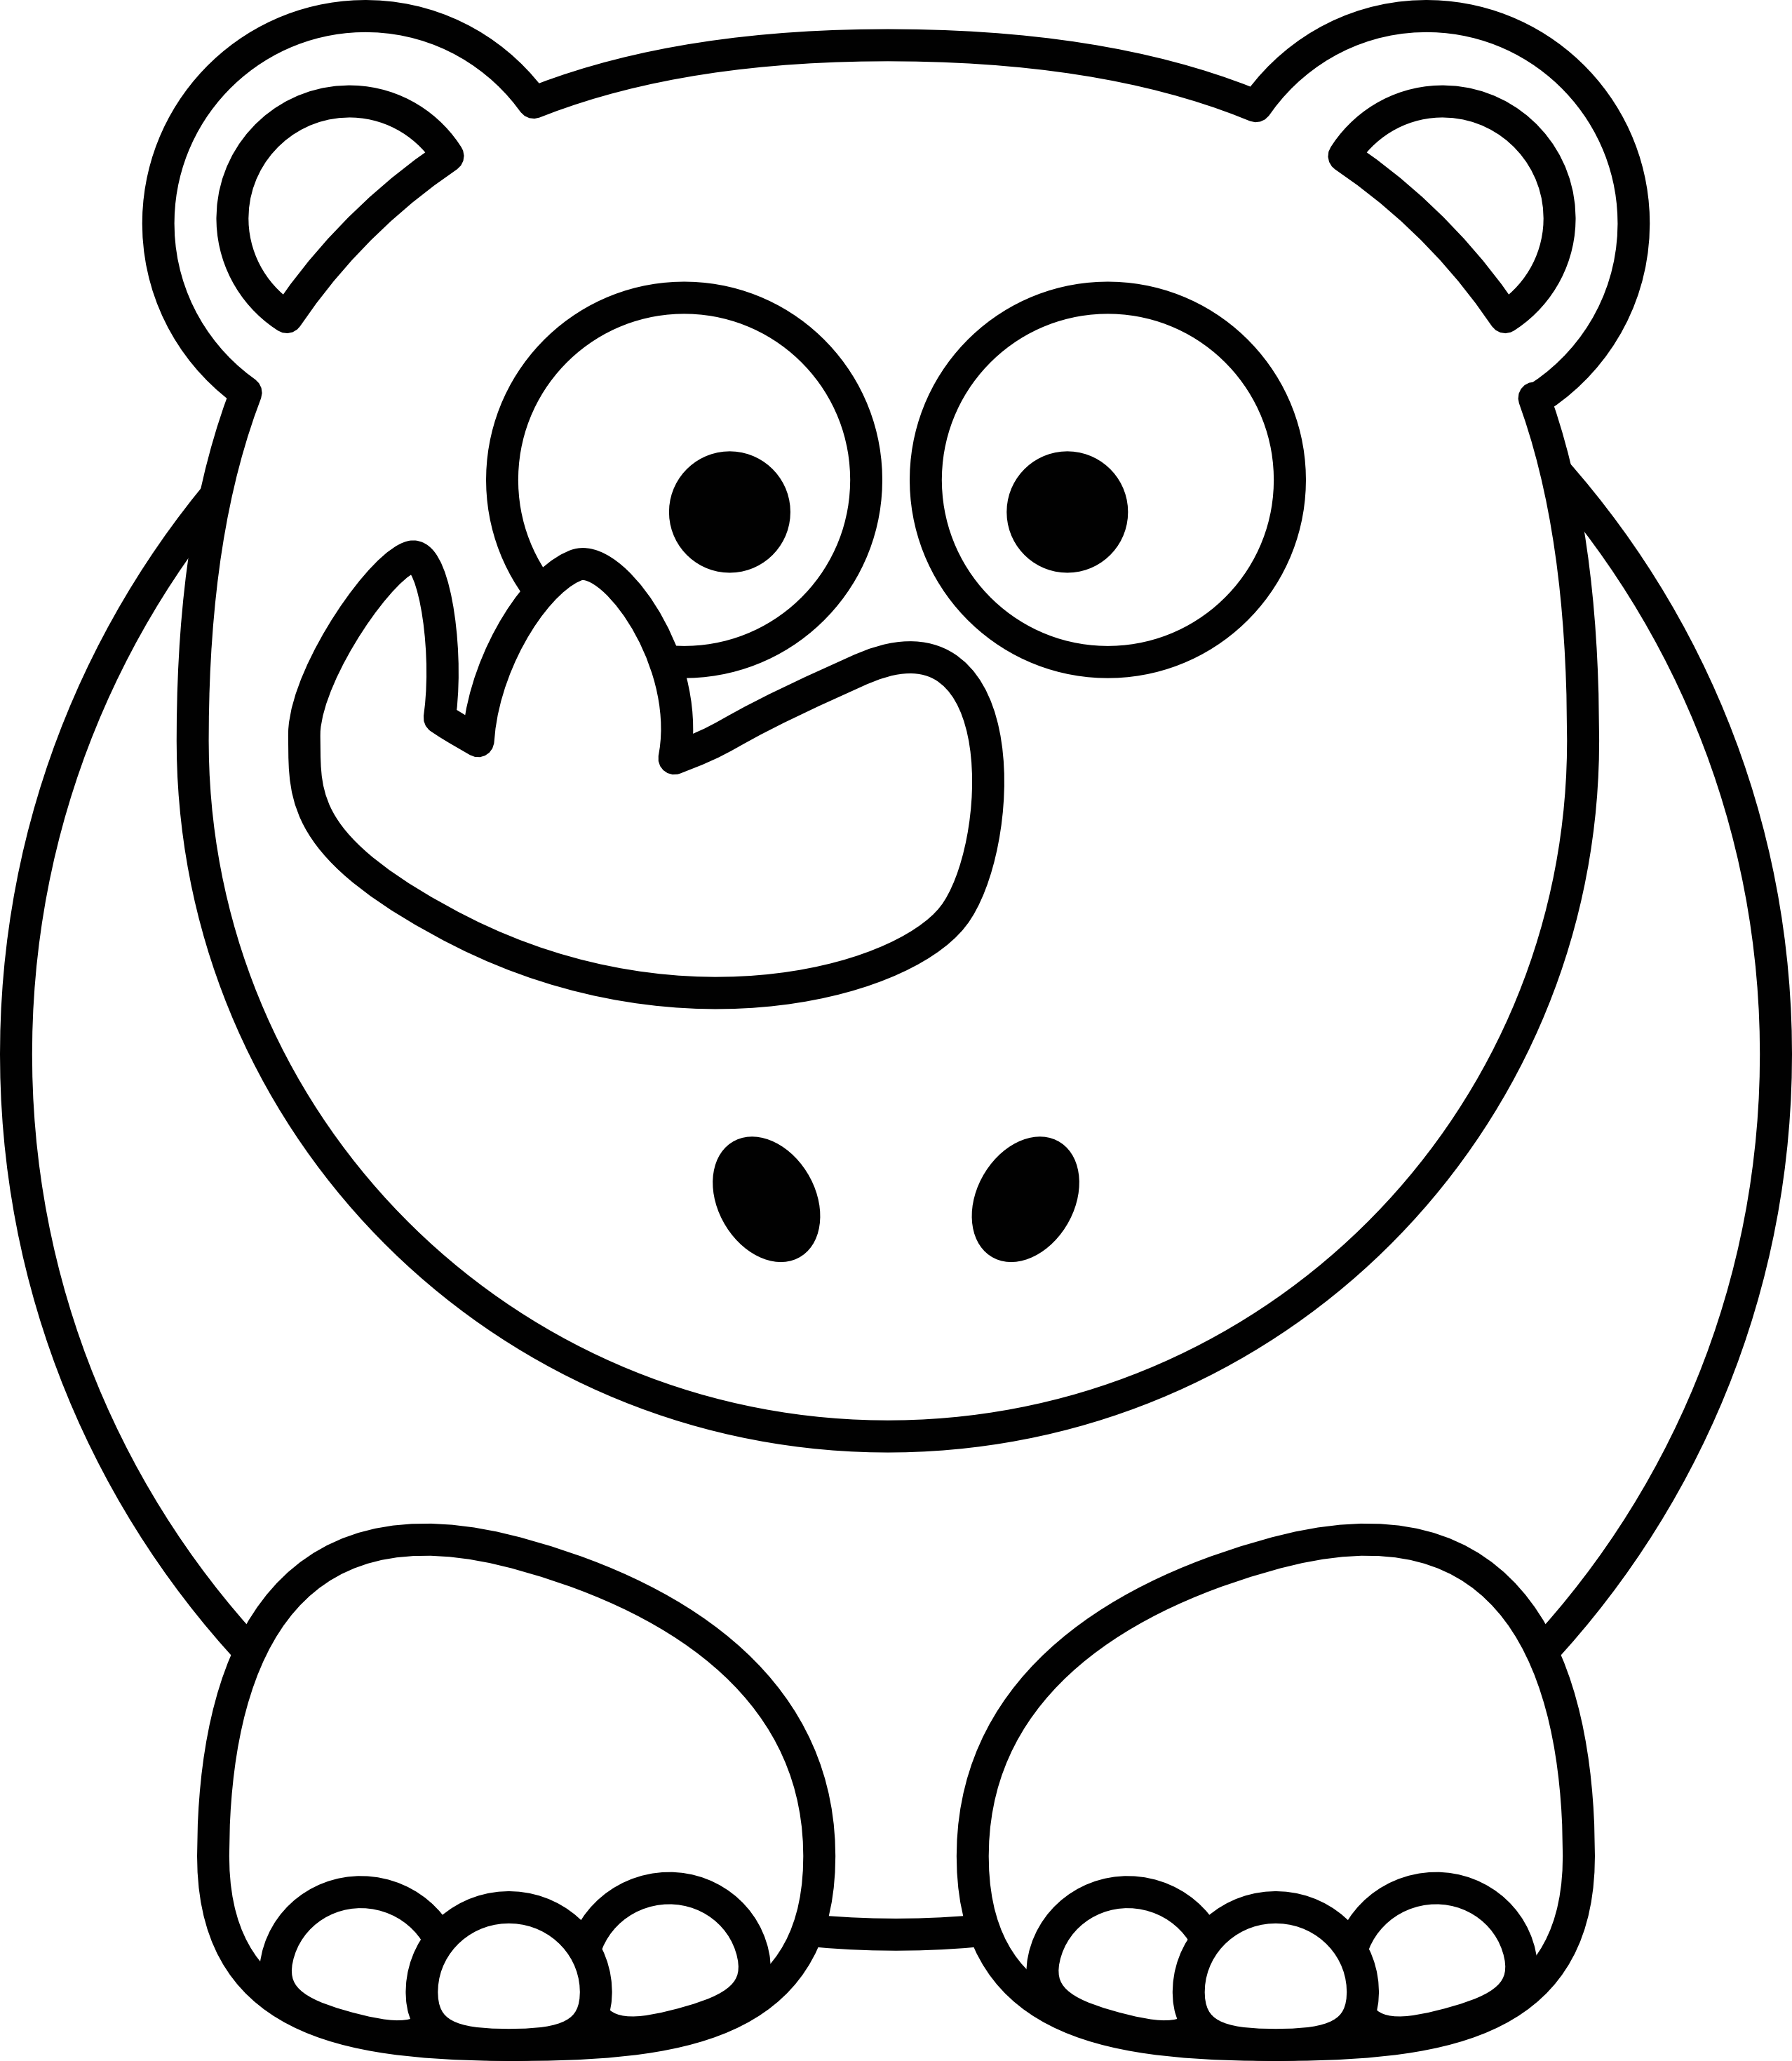 2555x2938 Stuffed Animal Clipart Black And White